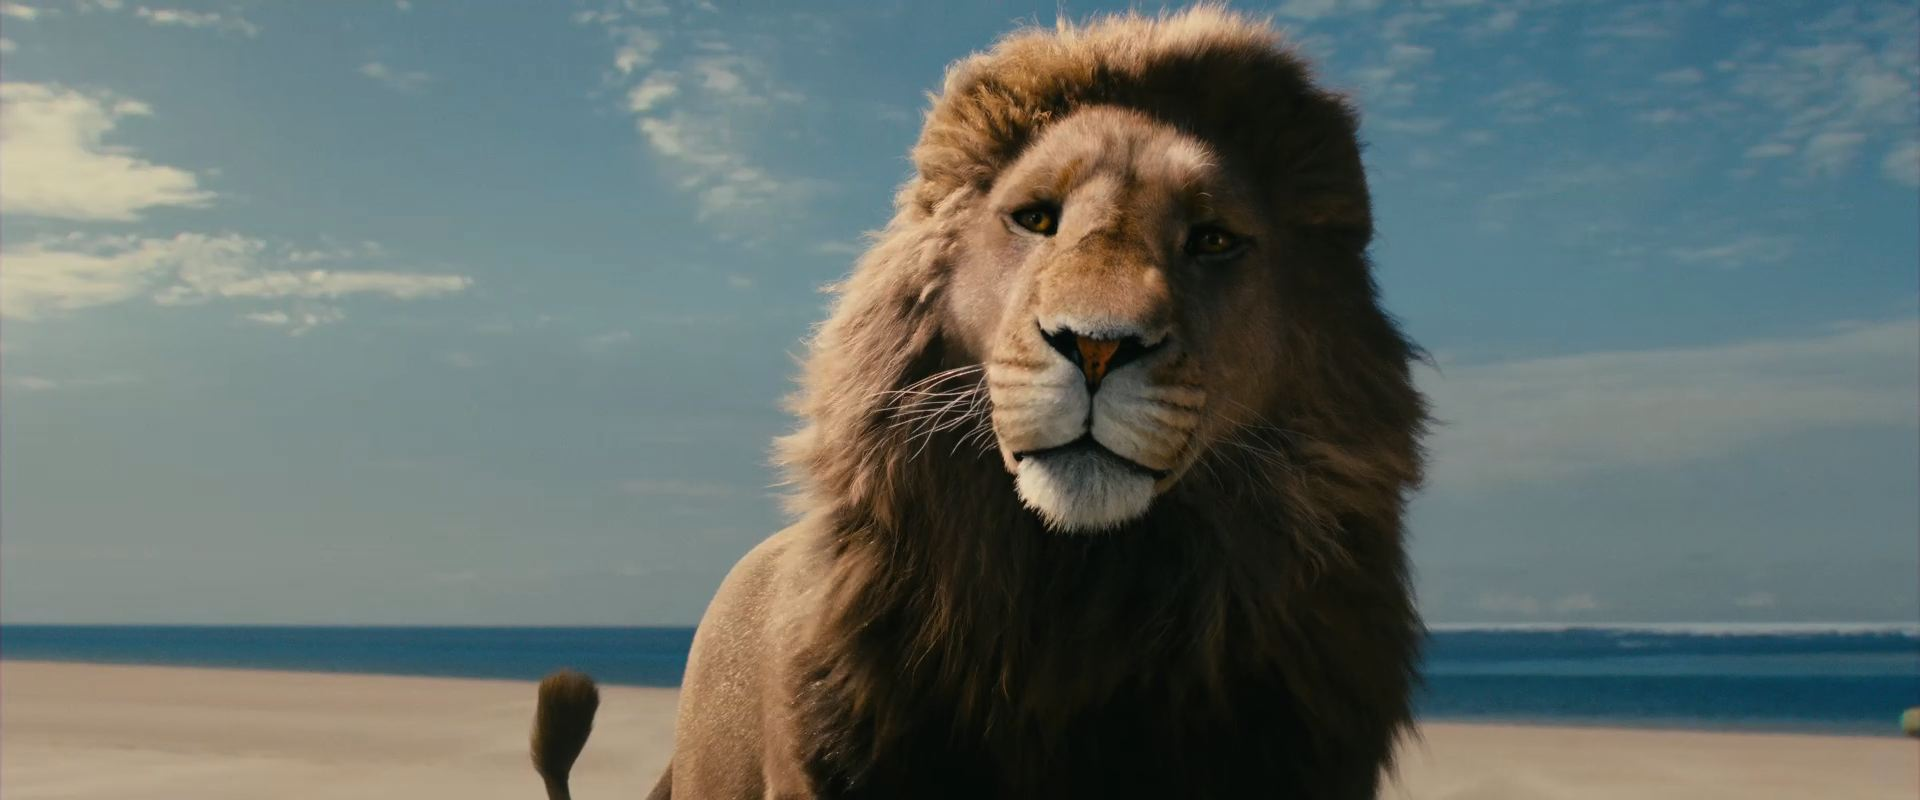 Aslan-lion-2-Chronicles-of-Narnia-Voyage-of-the-Dawn-Treader-wallpaper